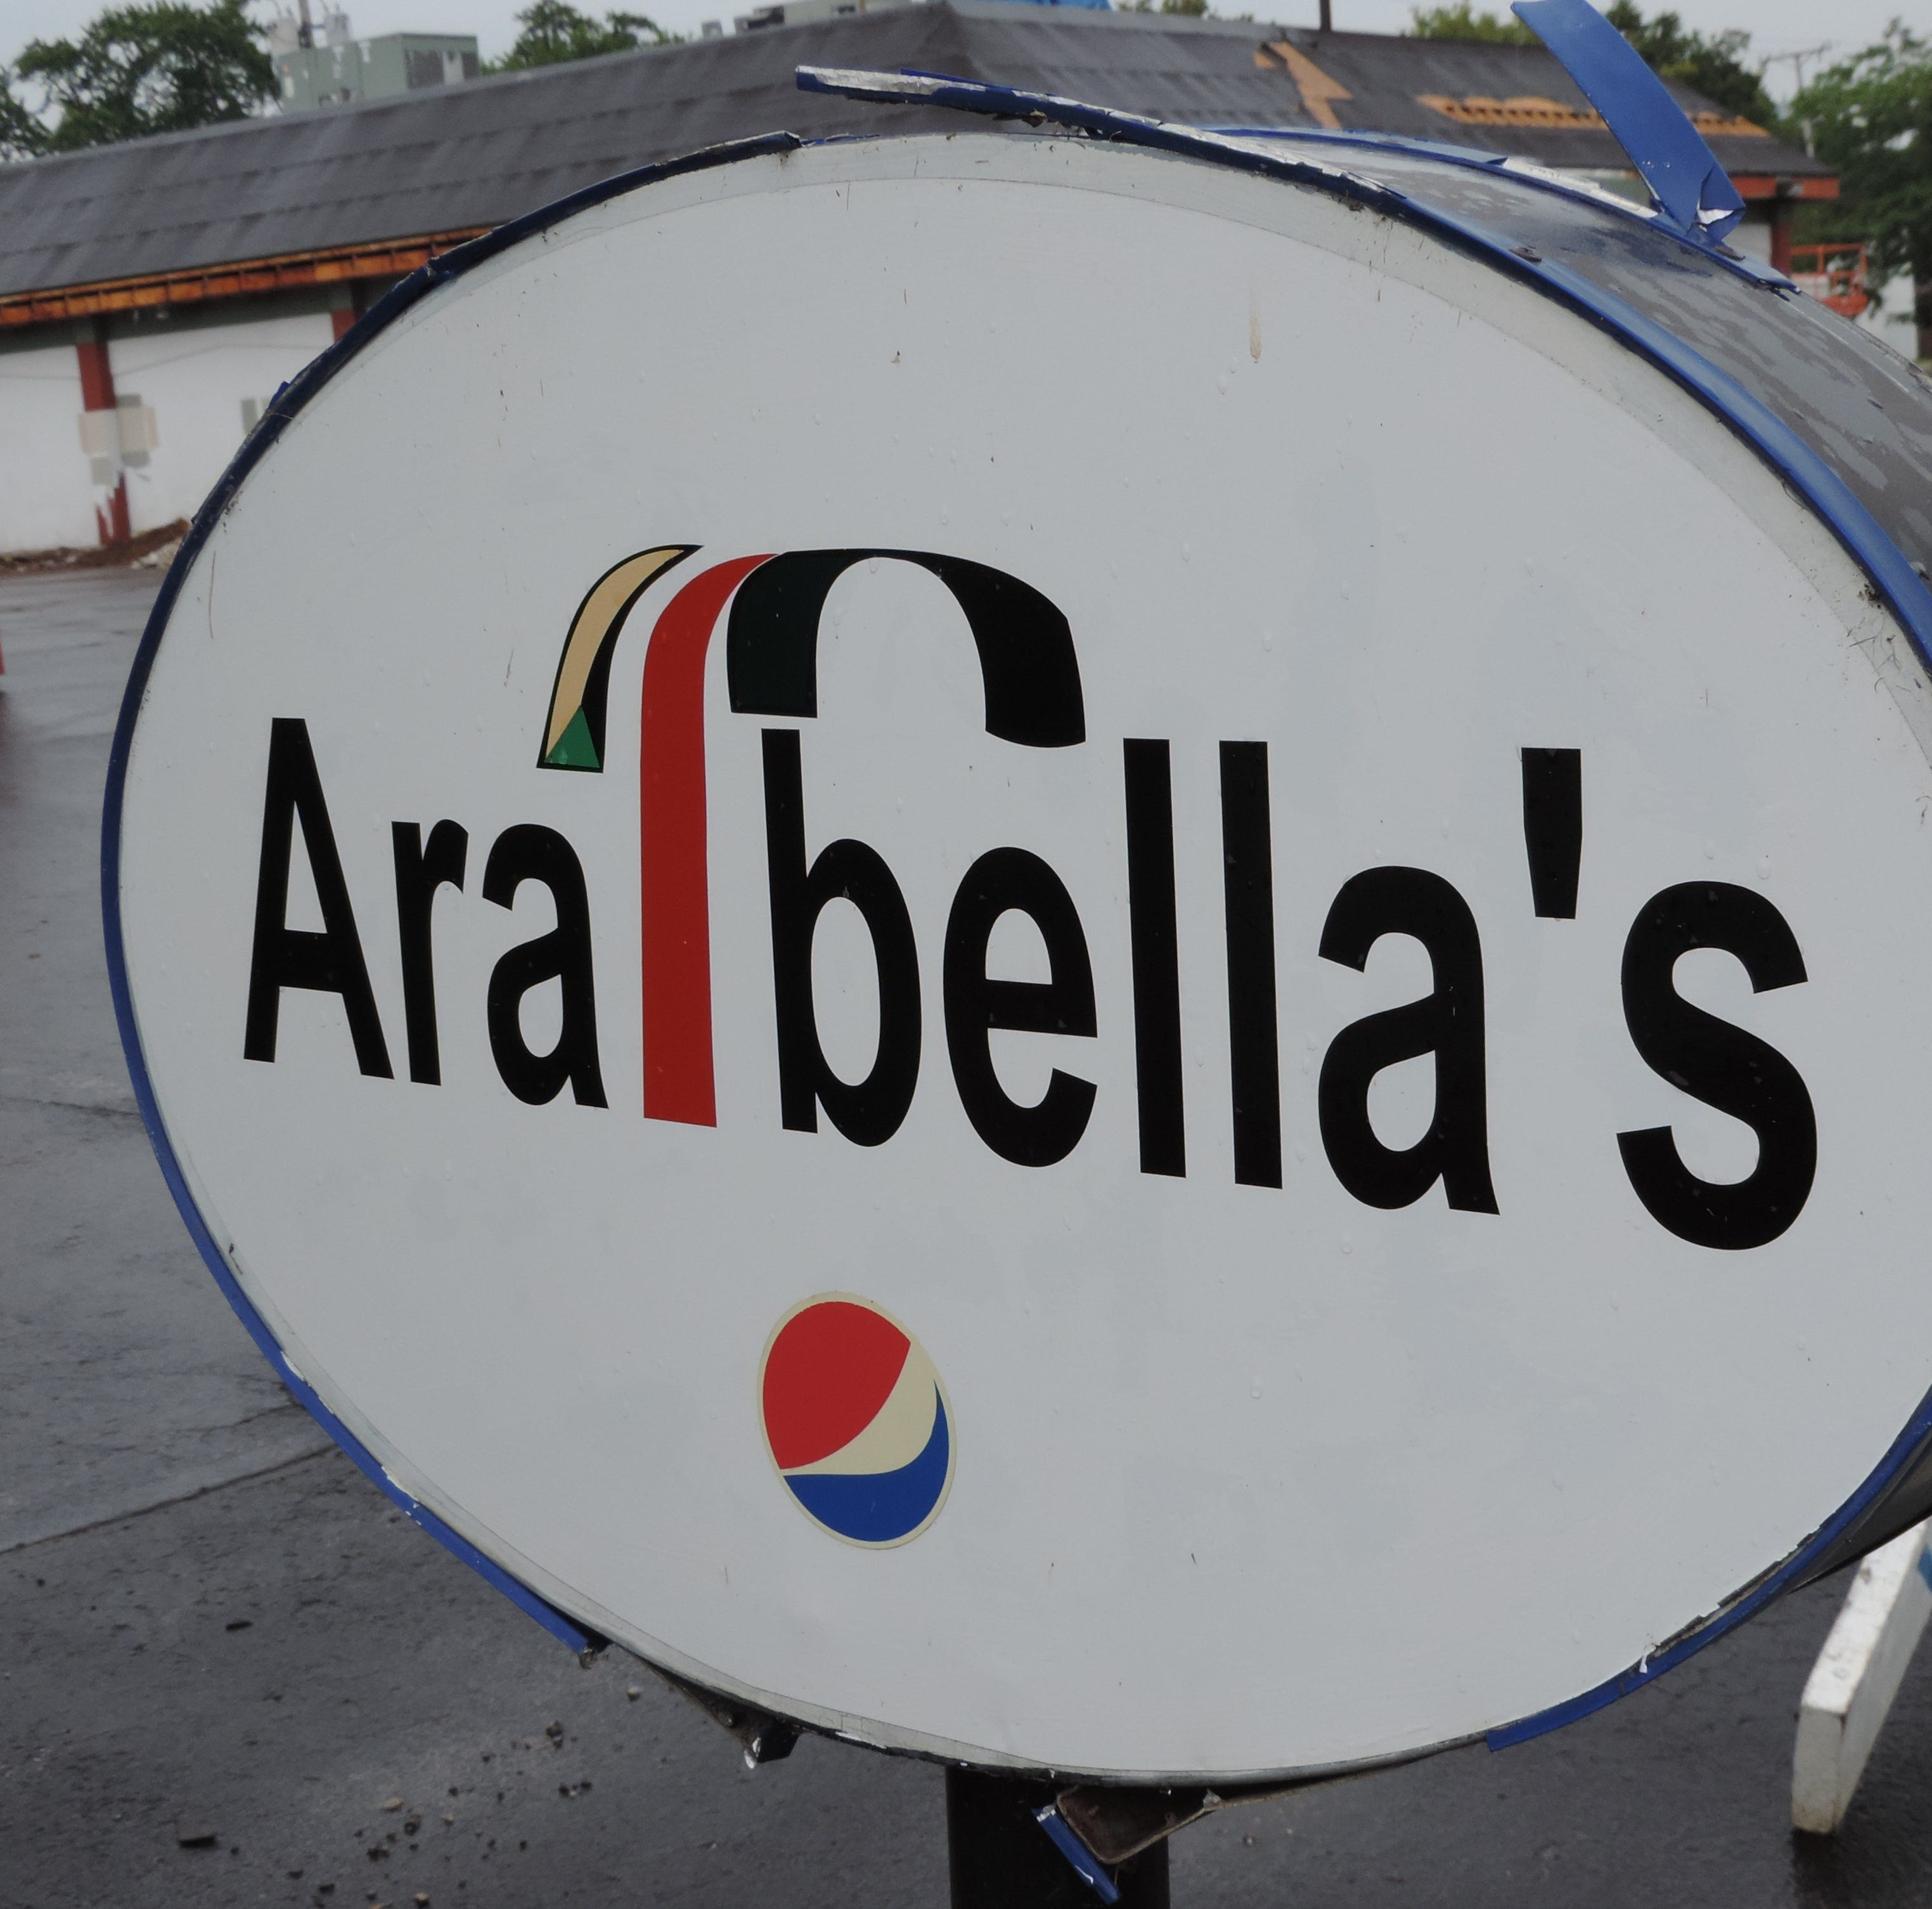 Arabella's Family Restaurant reopening as Café Bella in Sheboygan| Streetwise